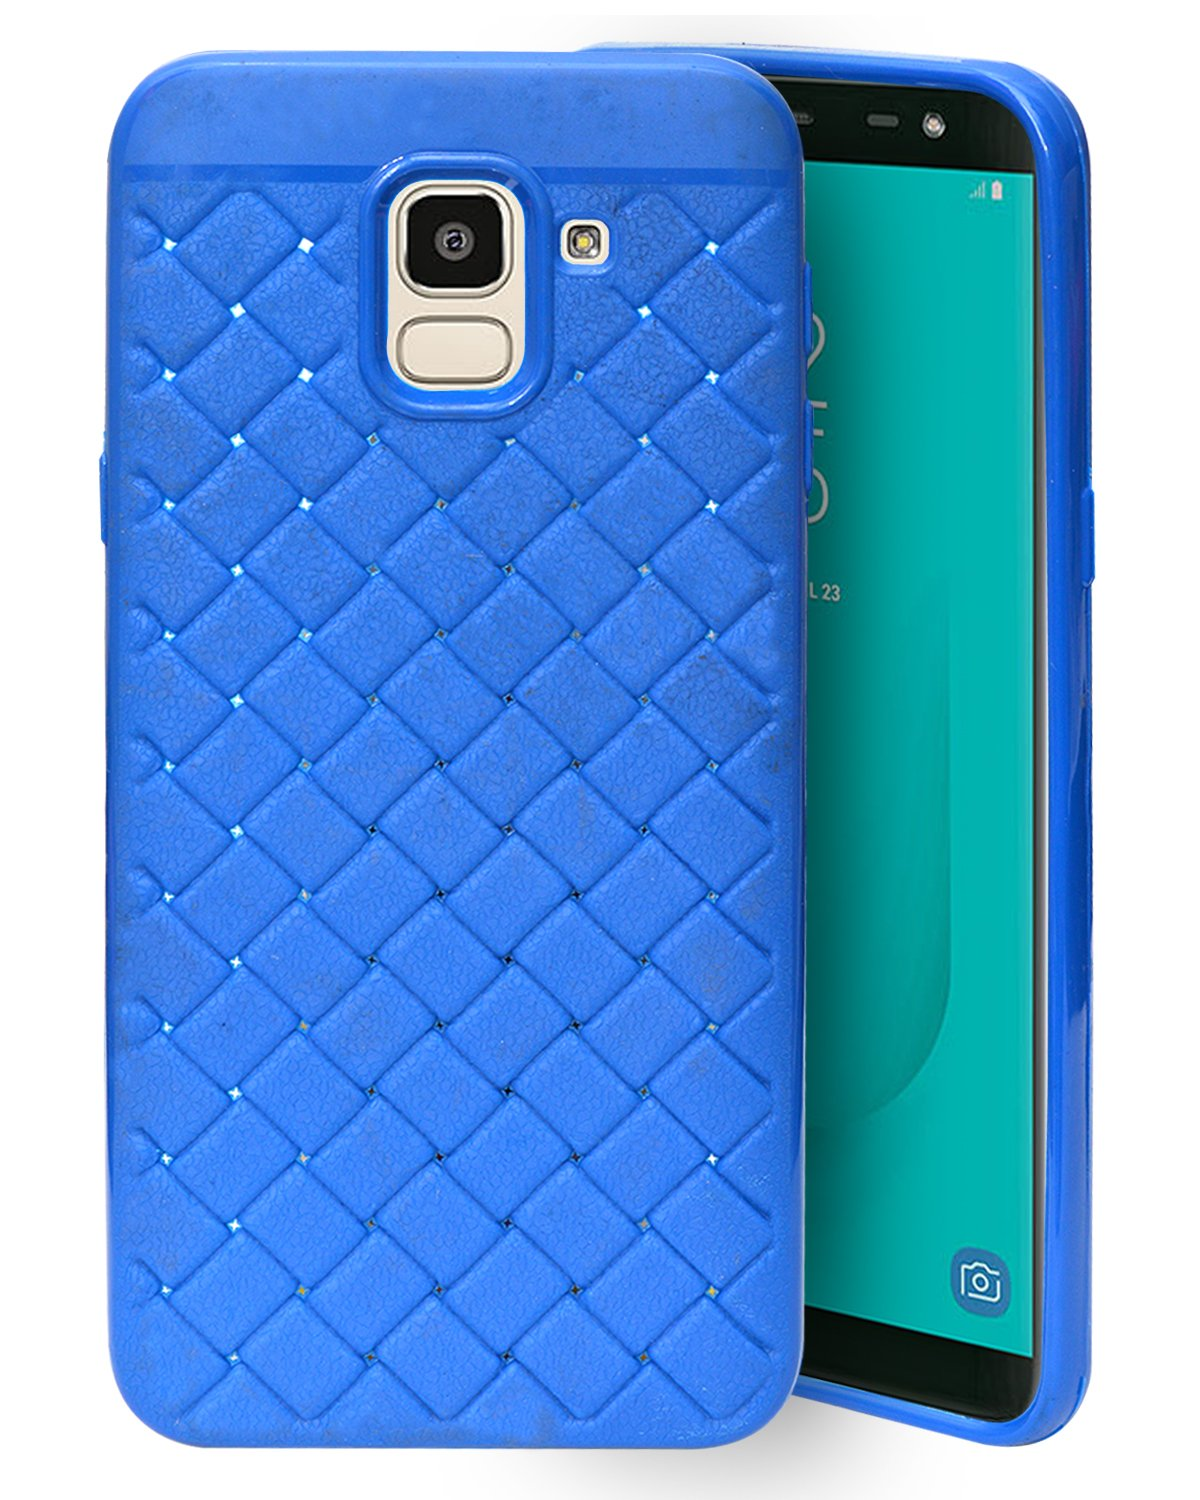 Samsung Galaxy J6 J600F Texture Soft Cusion Padding Back Case Cover - Blue